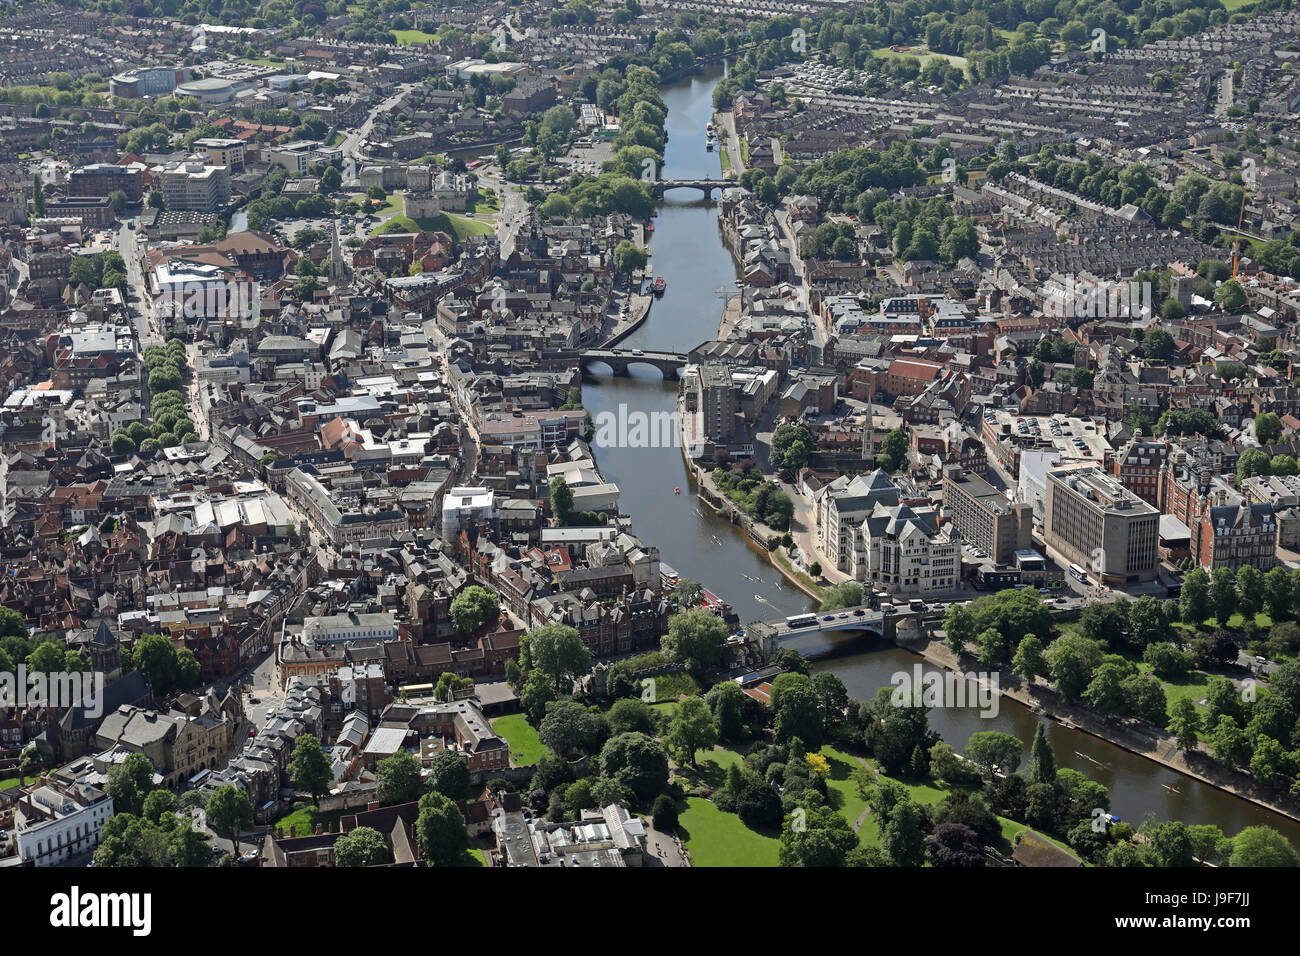 aerial view of the River Ouse & York city centre, UK - Stock Image